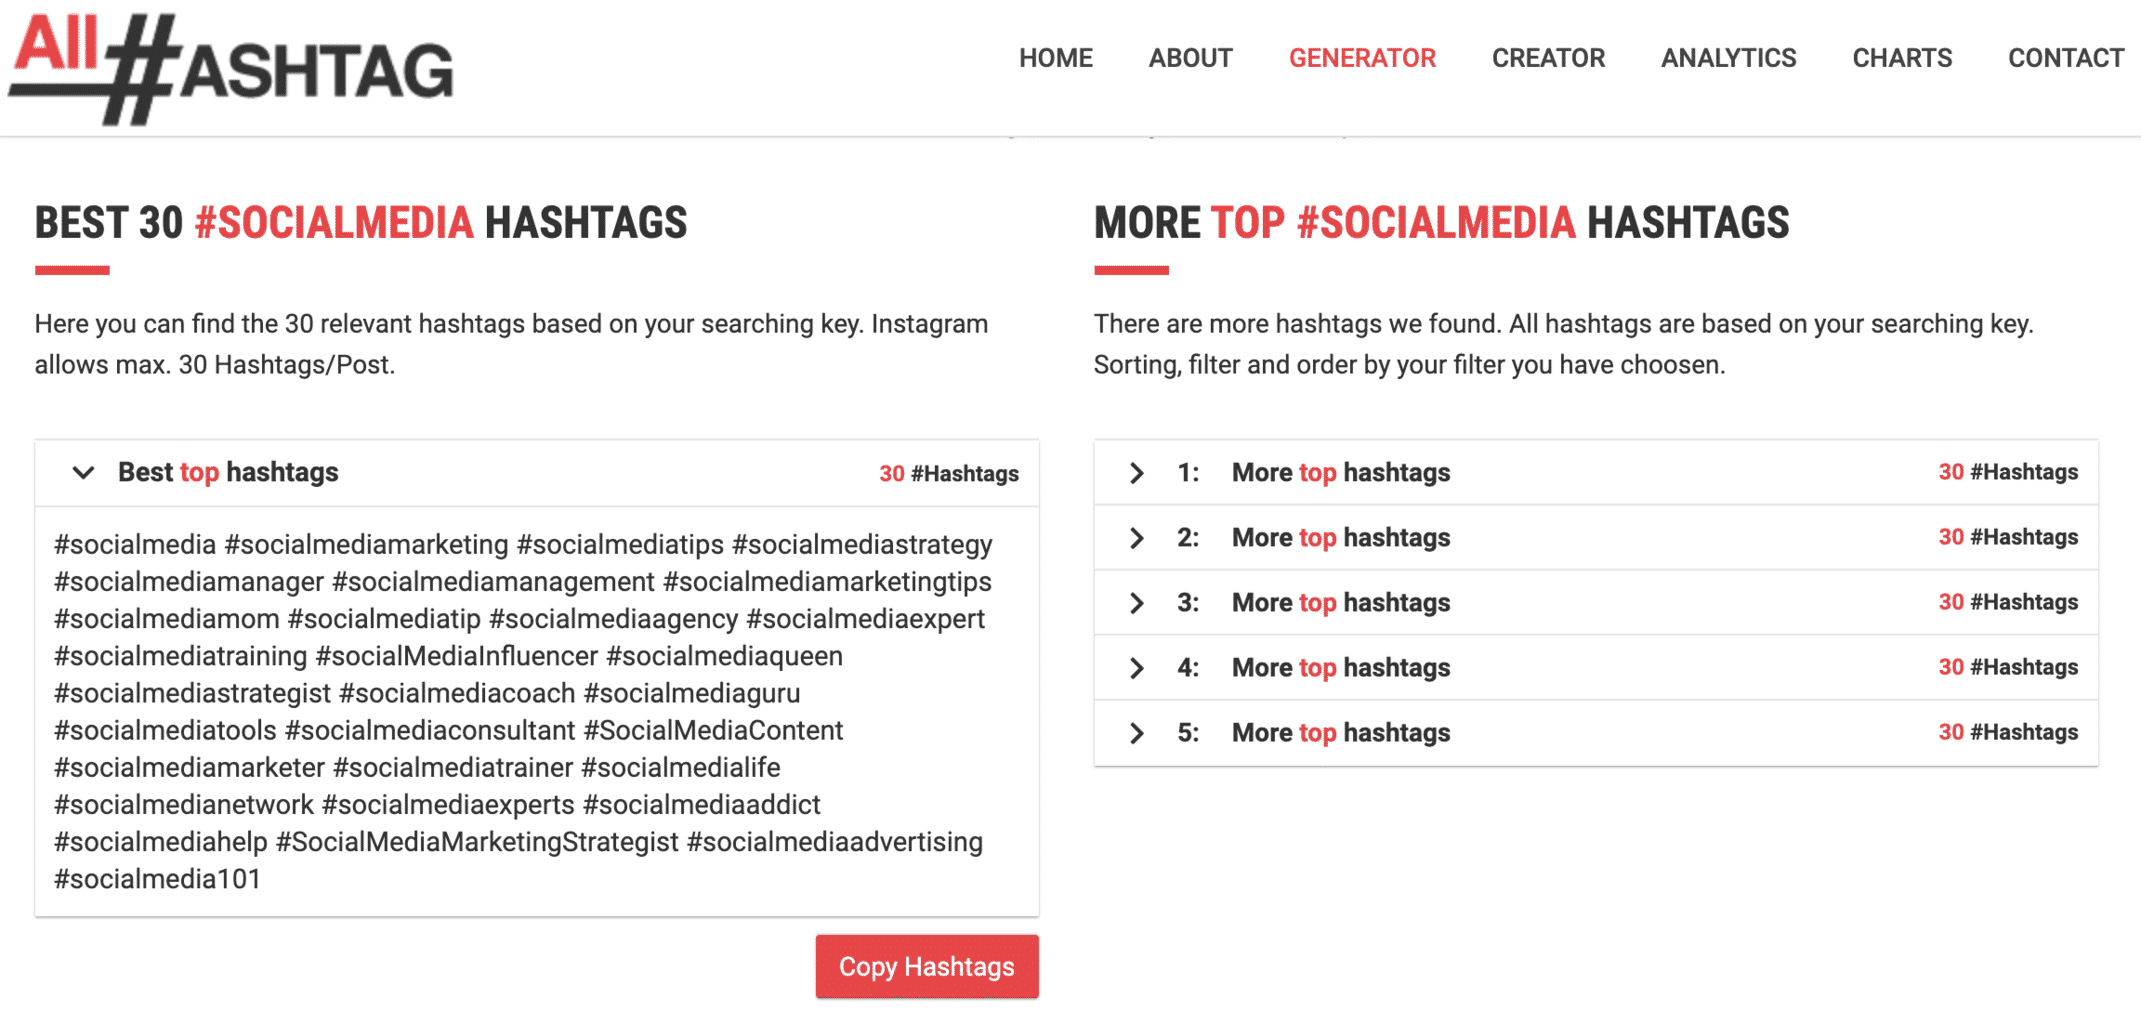 all-hashtag search for Instagram hashtags #socialmedia